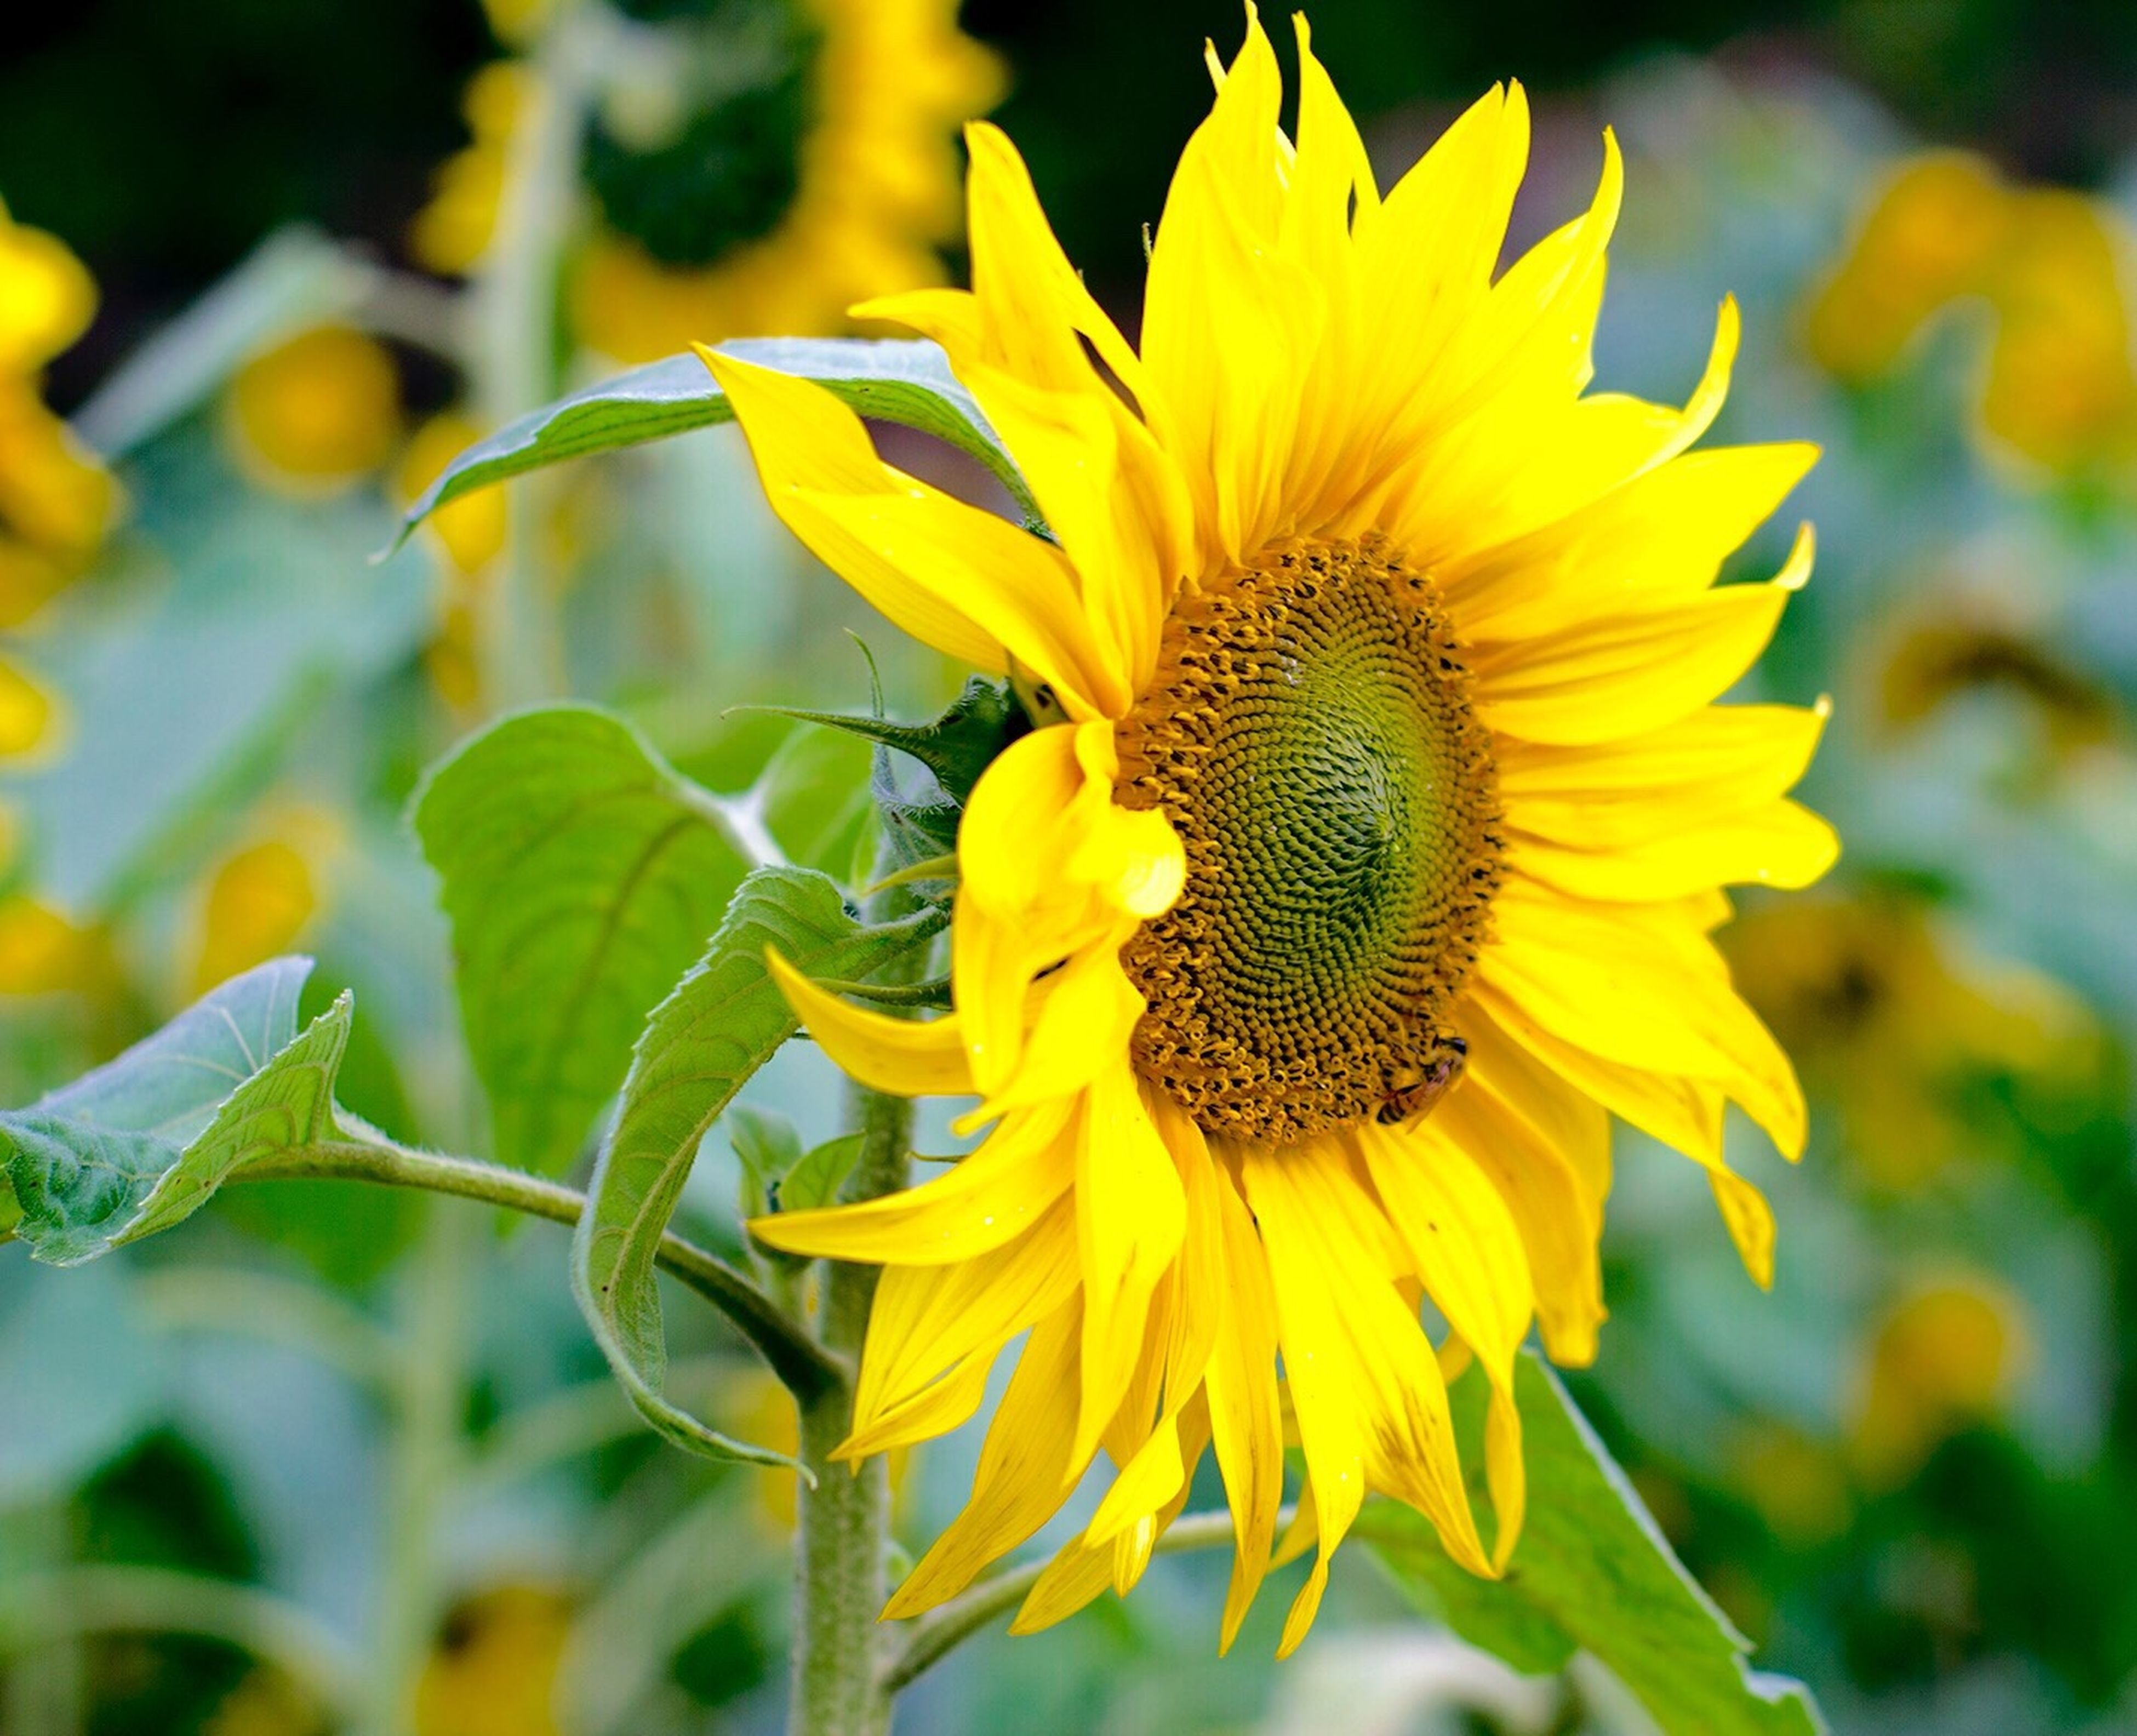 flower, yellow, freshness, petal, flower head, fragility, growth, sunflower, focus on foreground, close-up, beauty in nature, plant, blooming, nature, pollen, single flower, insect, in bloom, outdoors, no people